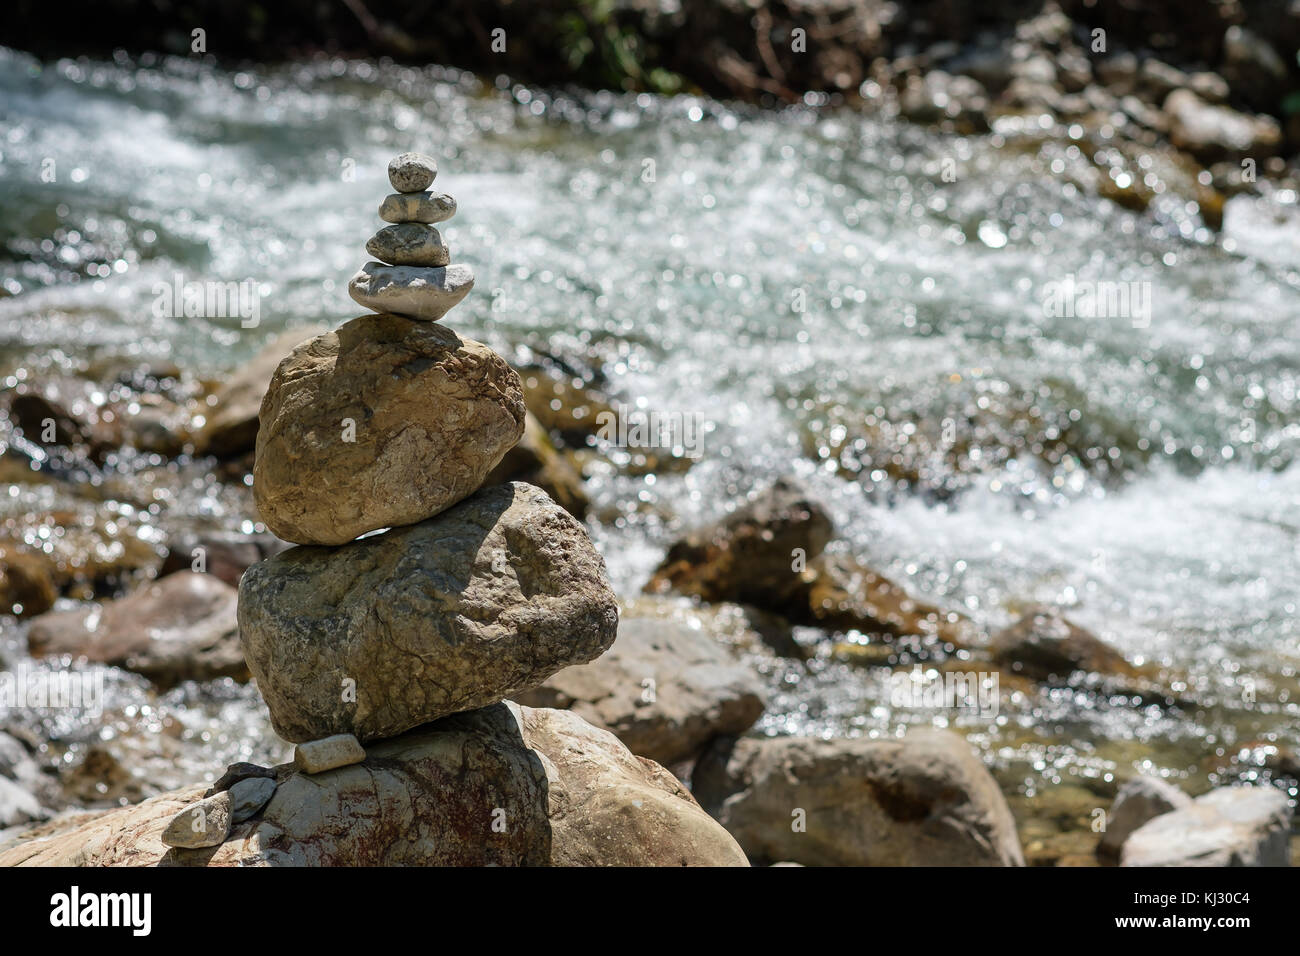 Cairns At A Mountain Stream As Symbol For Balance In Nature Stock